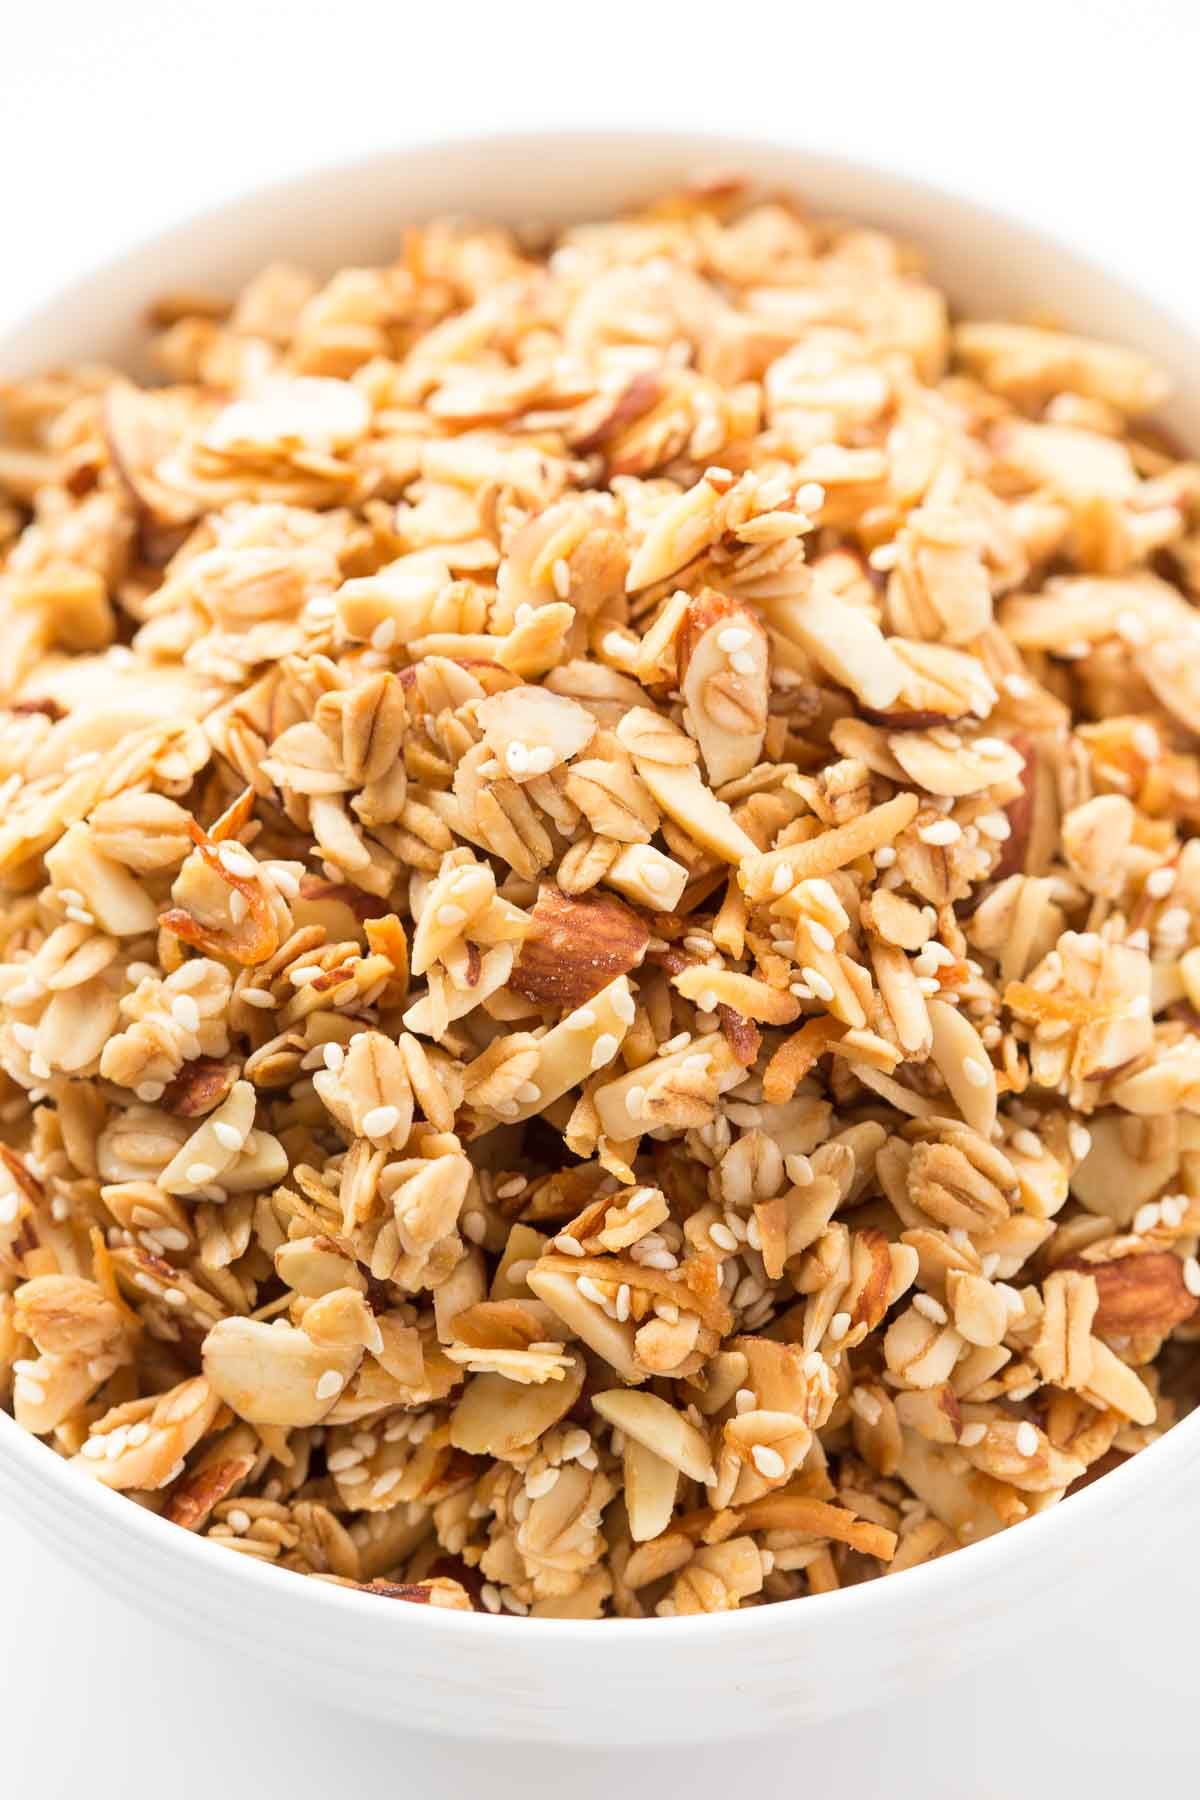 Photo of a white bowl filled with Best Ever Granola.